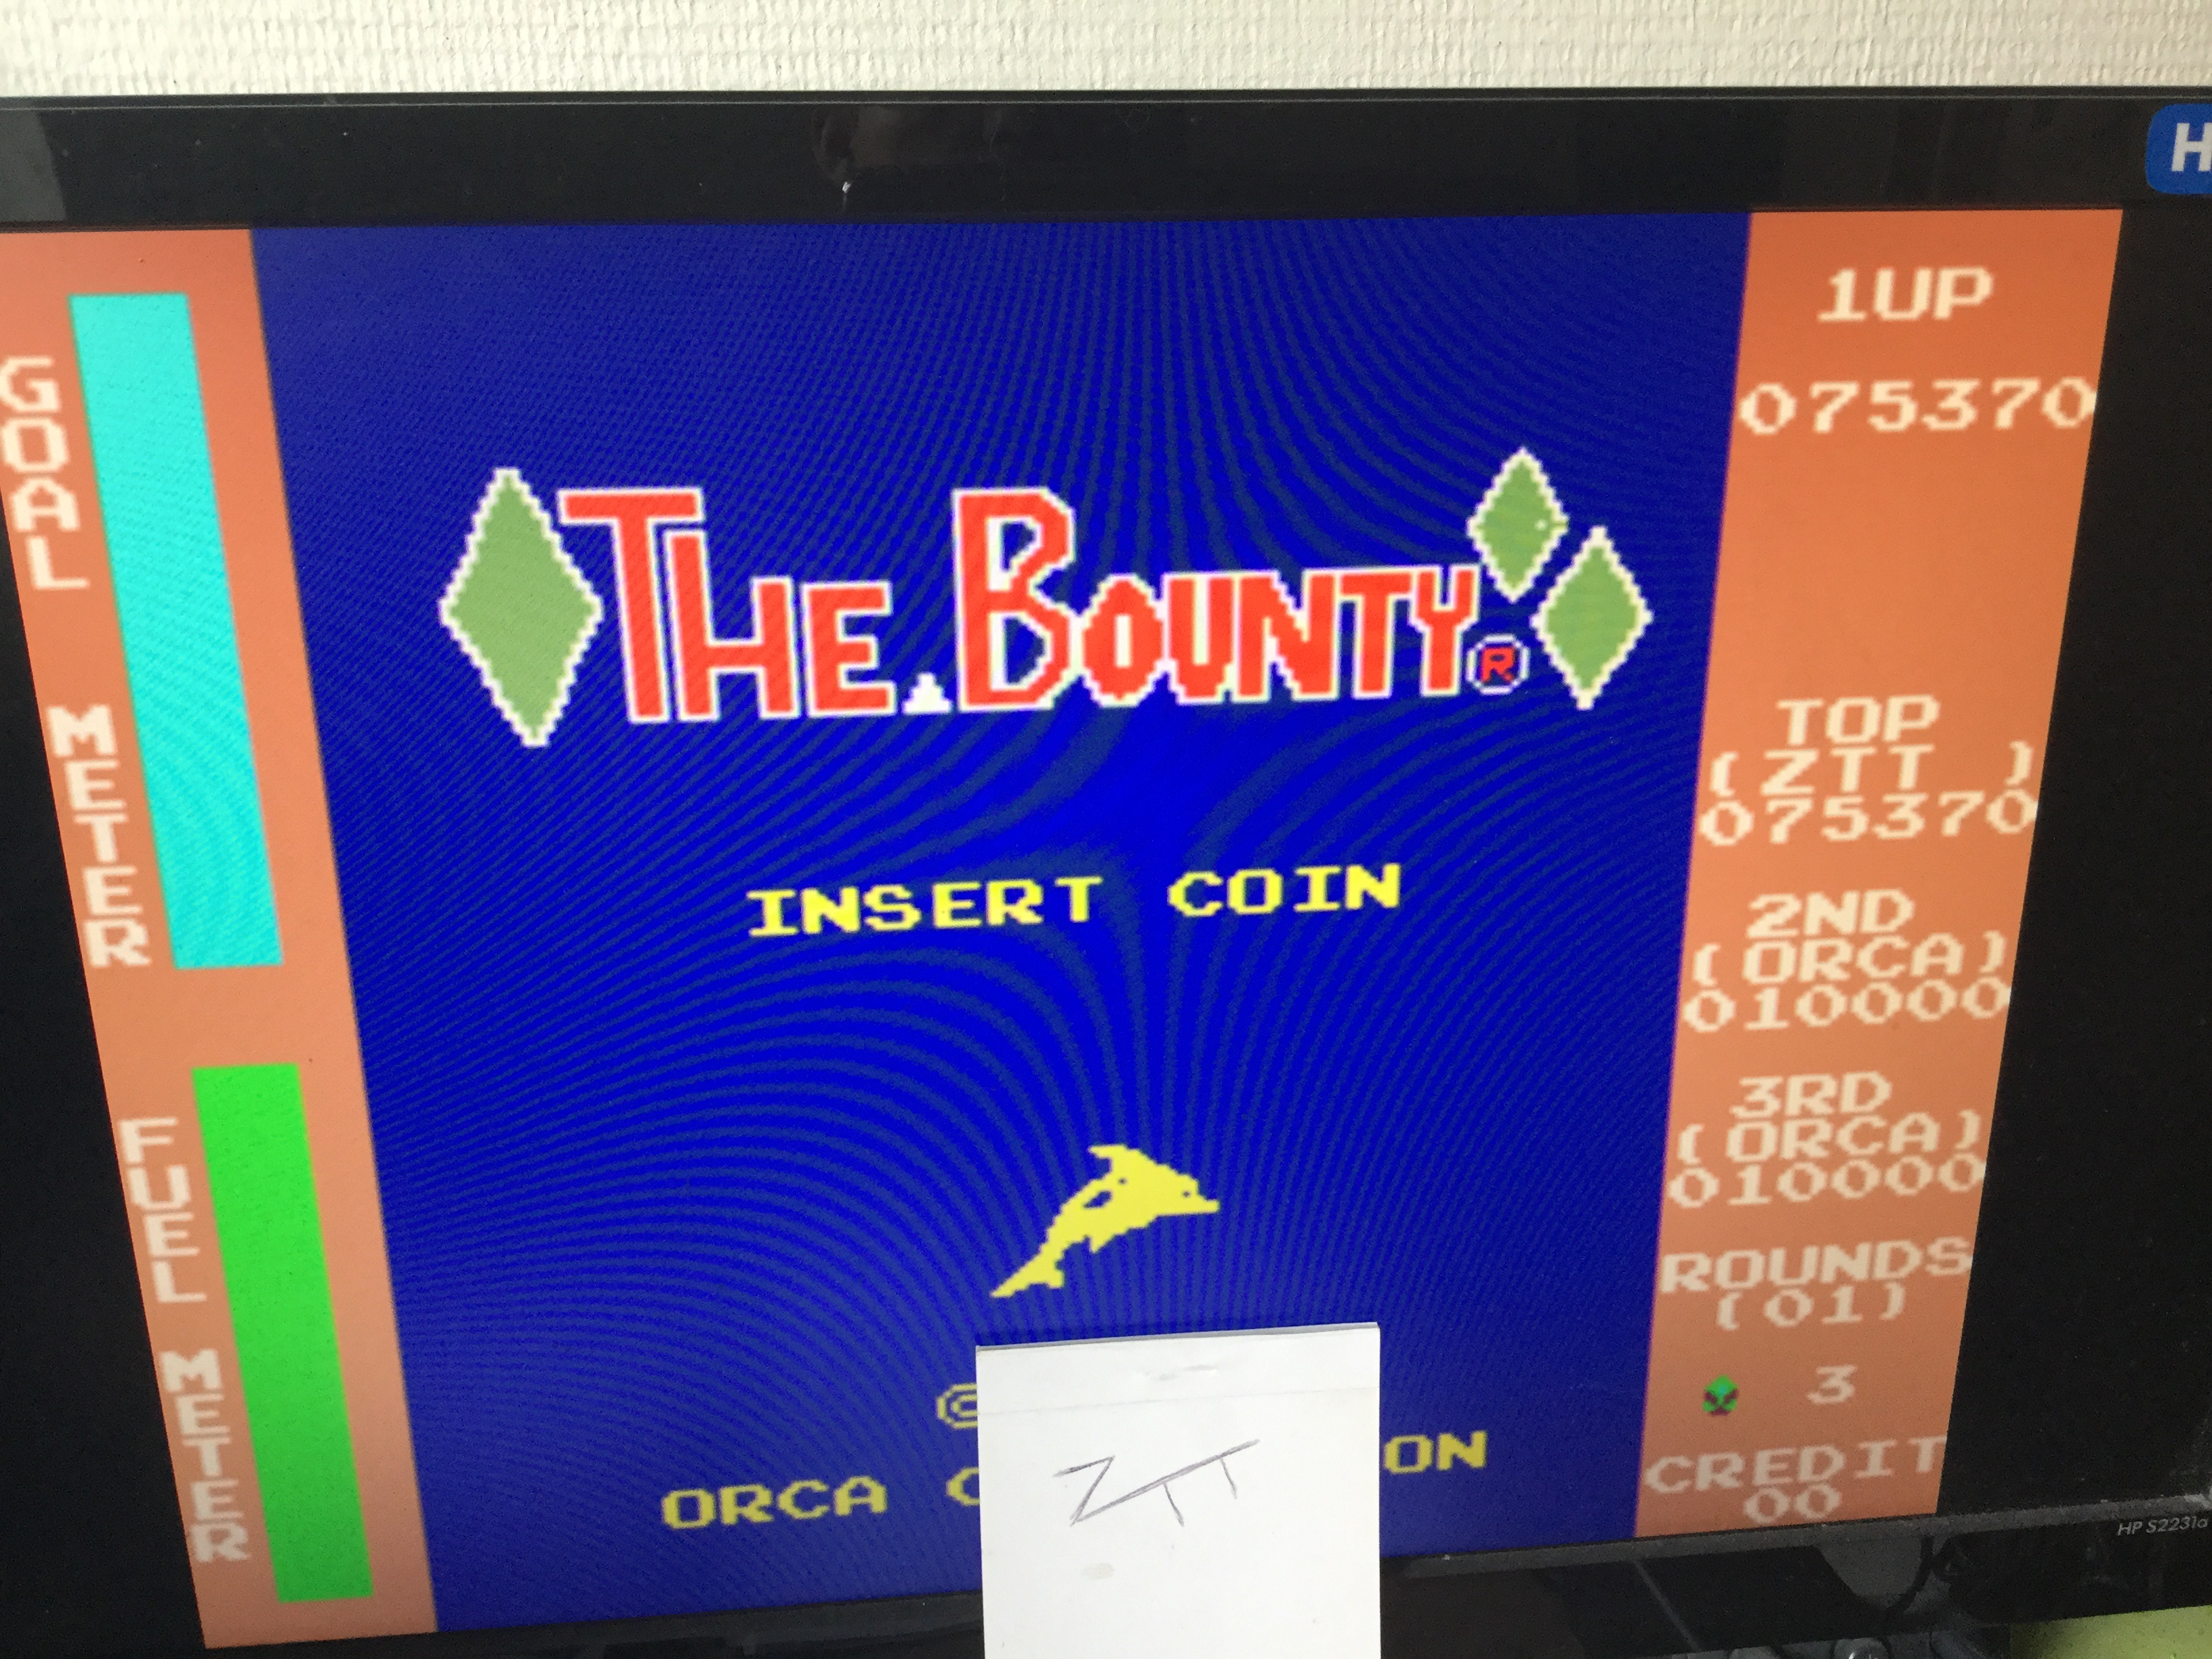 Frankie: The Bounty [bounty] (Arcade Emulated / M.A.M.E.) 75,370 points on 2017-08-19 04:51:52